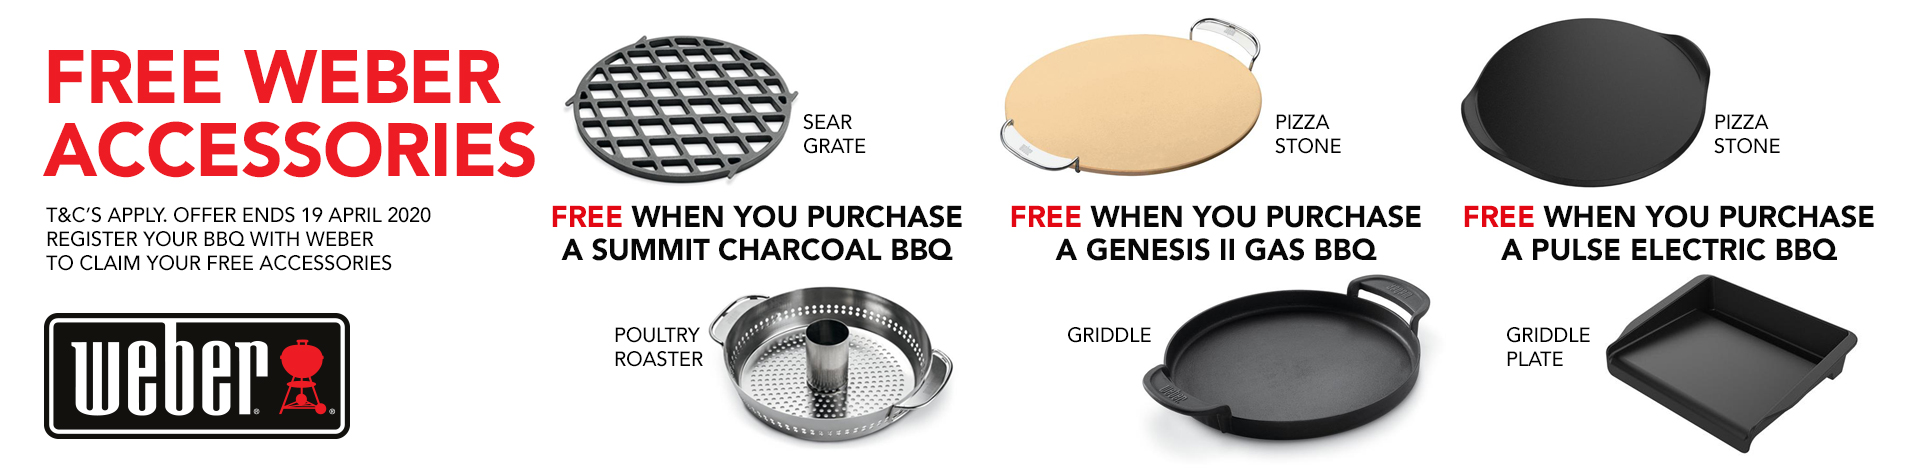 FREE ACCESSORIES from Weber...